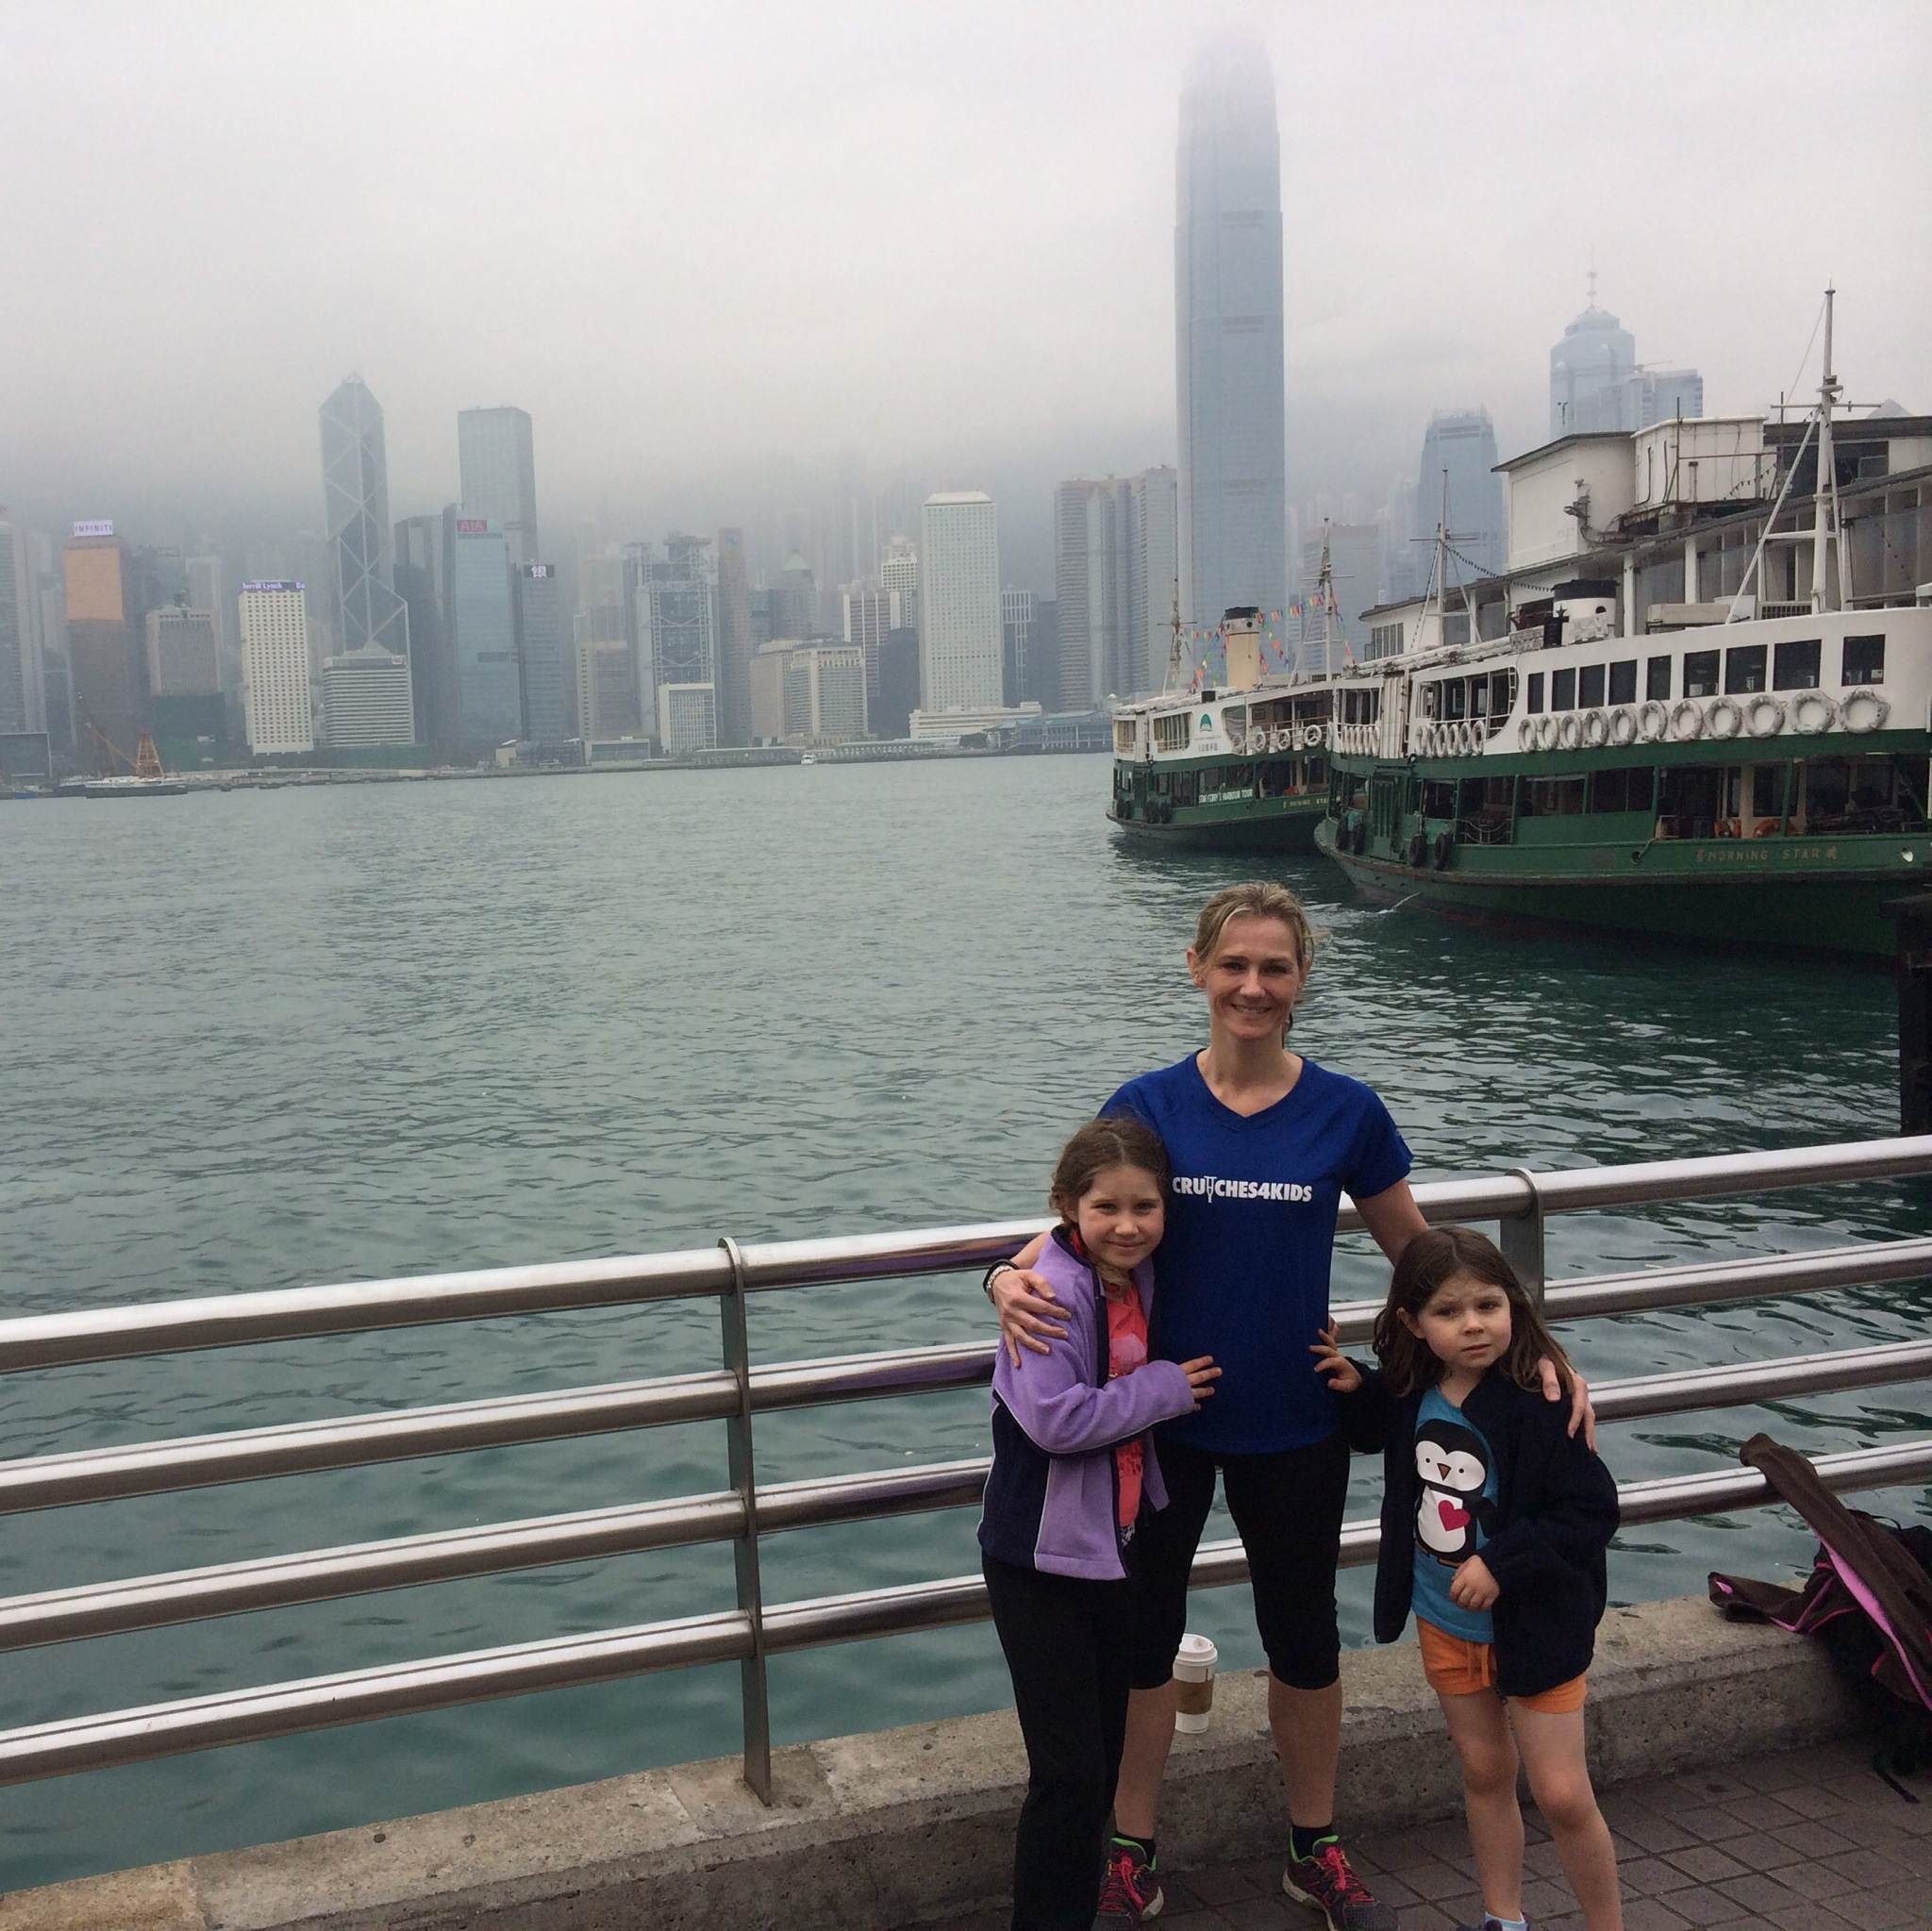 """Antonia Lewis-Iley in Hong Kong - """"I can't quite believe I am flying from Hong Kong to run the New York half, but I suppose that is what friends are for....to get you to do crazy things you would otherwise never think to do. My training has included """"beating the banana"""" in the 1km family fun run in Hong Kong this week, definitely a highlight, as our two girls ran their hearts out, and were so proud of their achievement...  I have been humbled by the number of friends who have donated to our fund-raising page, in no small part to them seeing for themselves what an incredible charity Crutches4kids is wanting to help this awesome charity."""""""